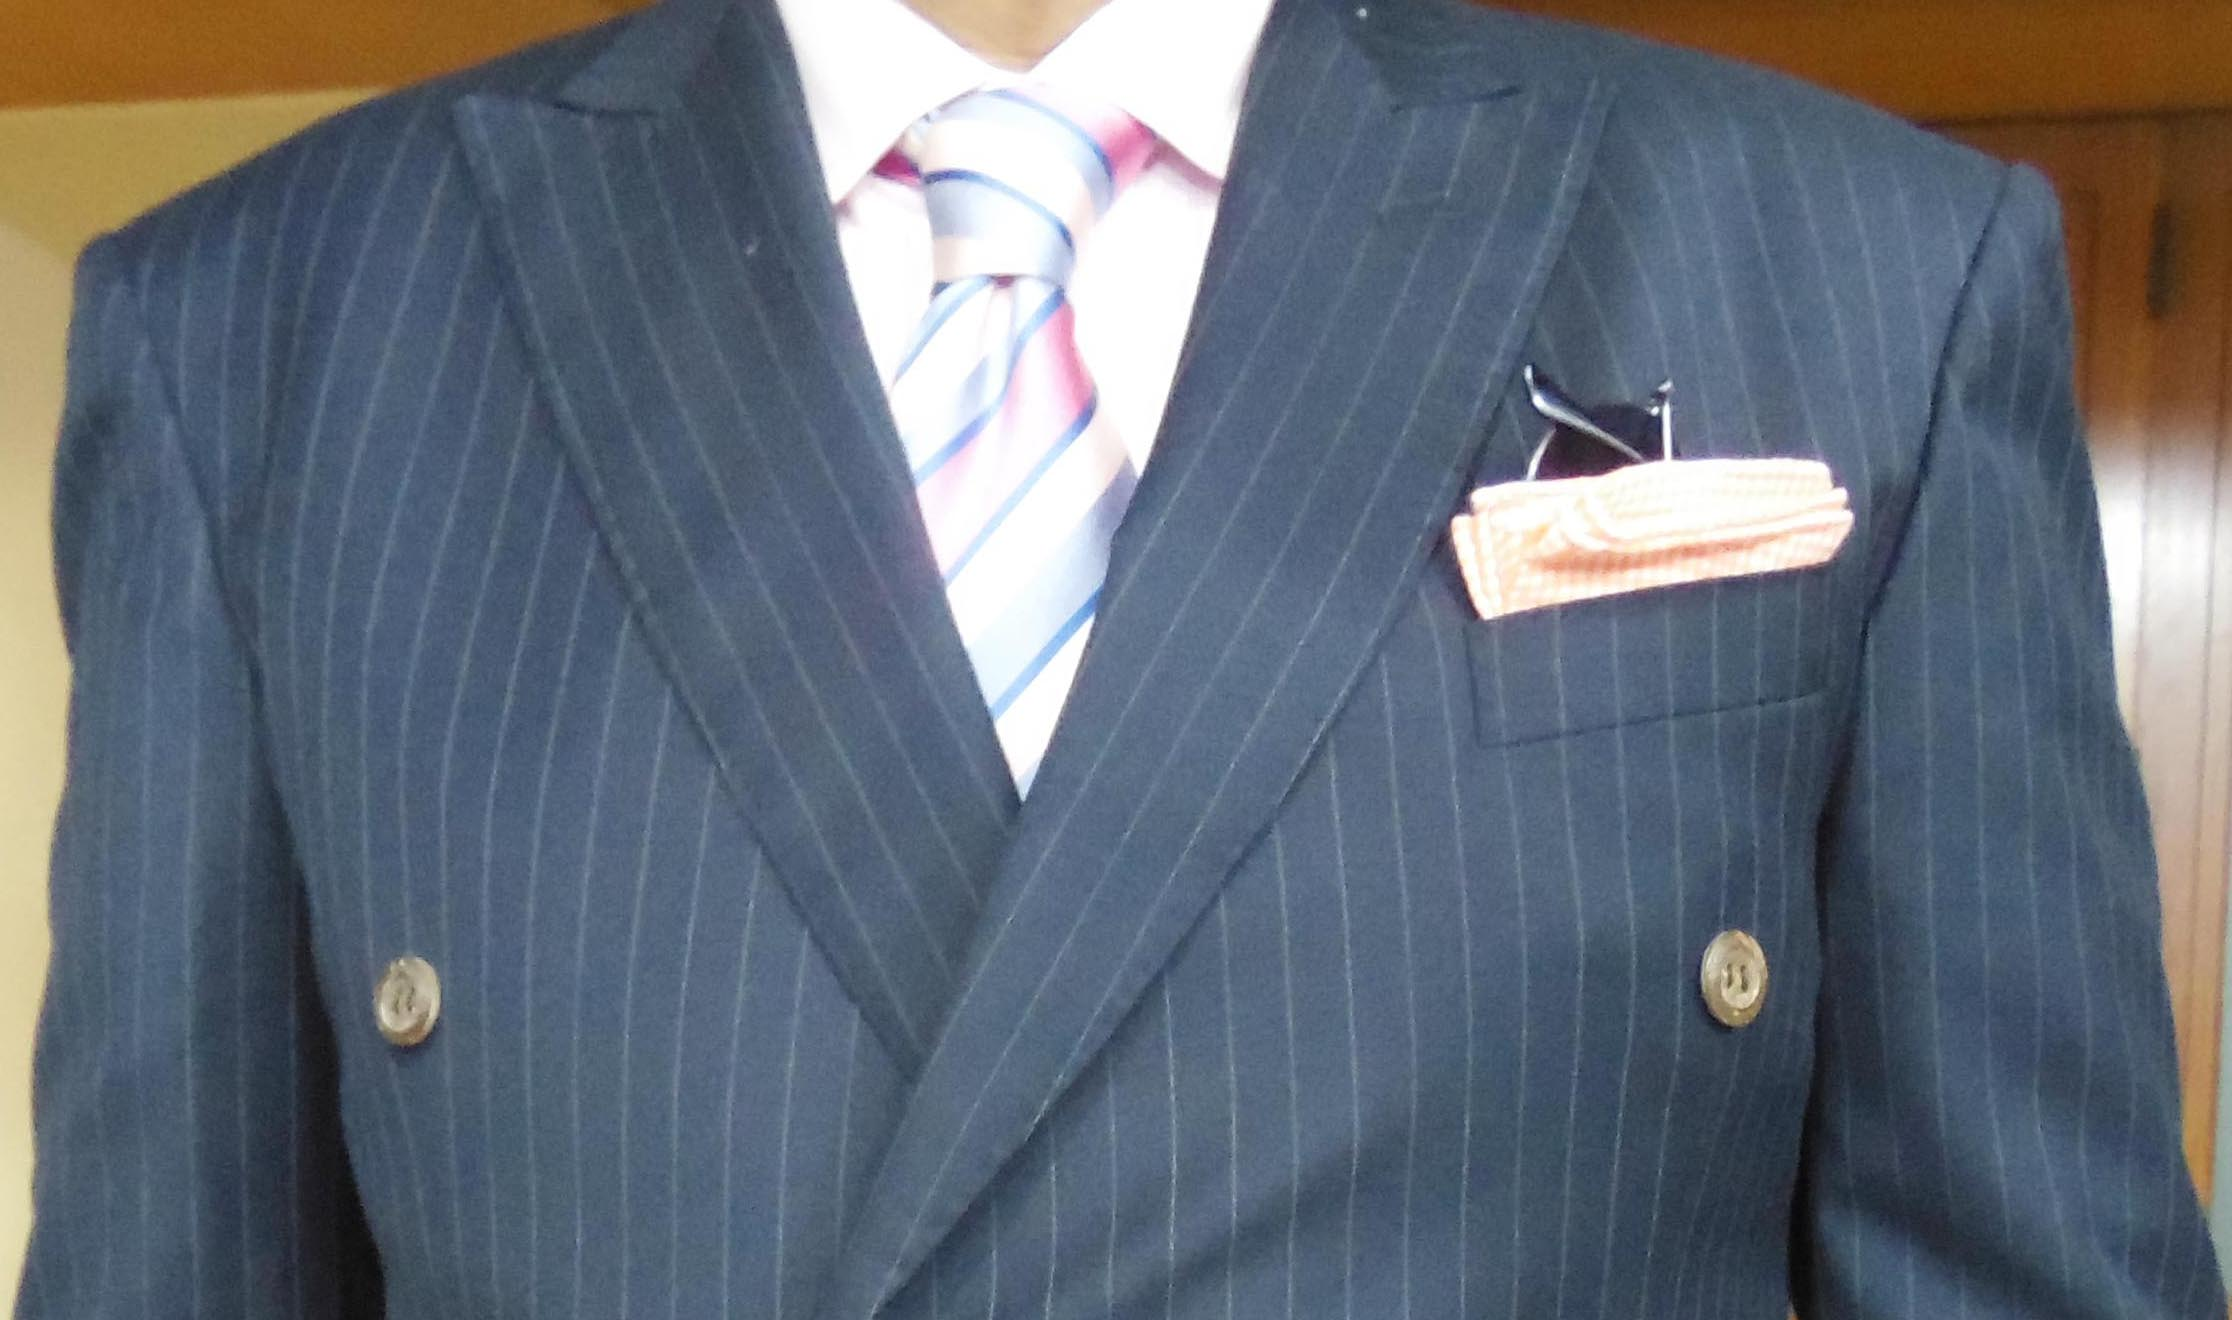 03d8bf69b3be3 ... pocket square Gray pinstripe suit, light pink shirt, pink and blue  striped silk tie, pink